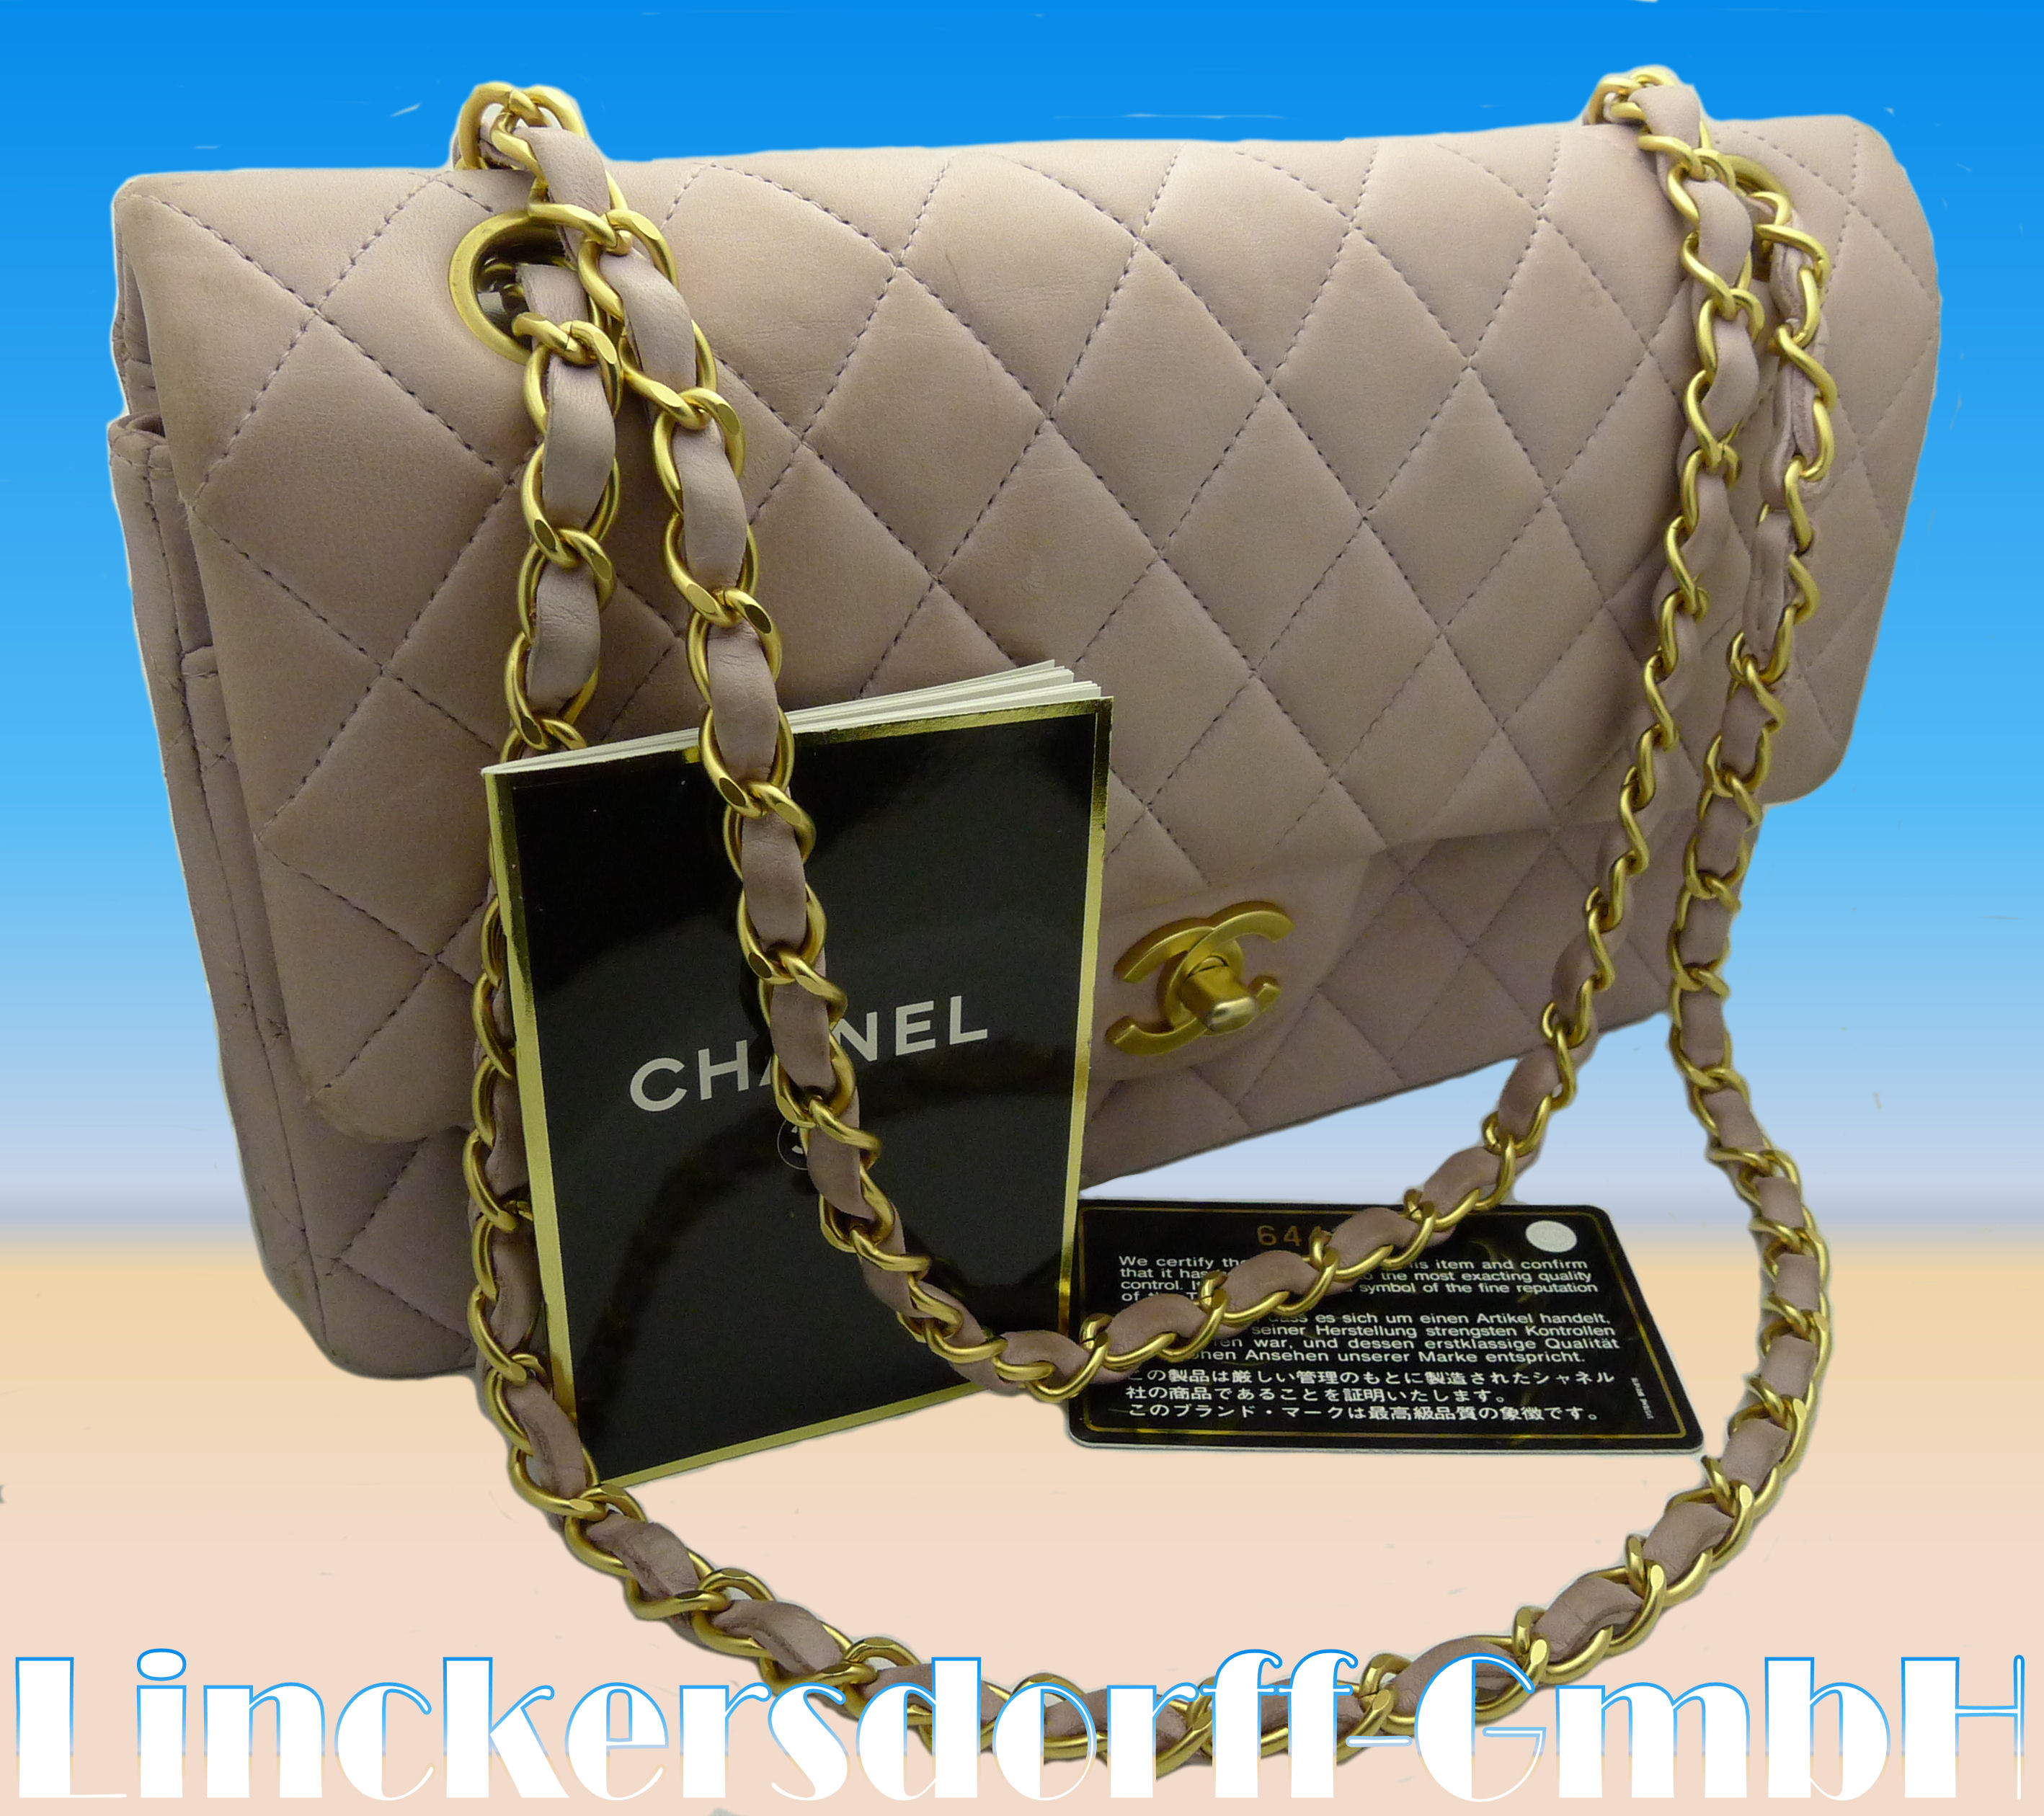 chanel tasche handtasche fliederfarben chevreauleder seidig matt ebay. Black Bedroom Furniture Sets. Home Design Ideas